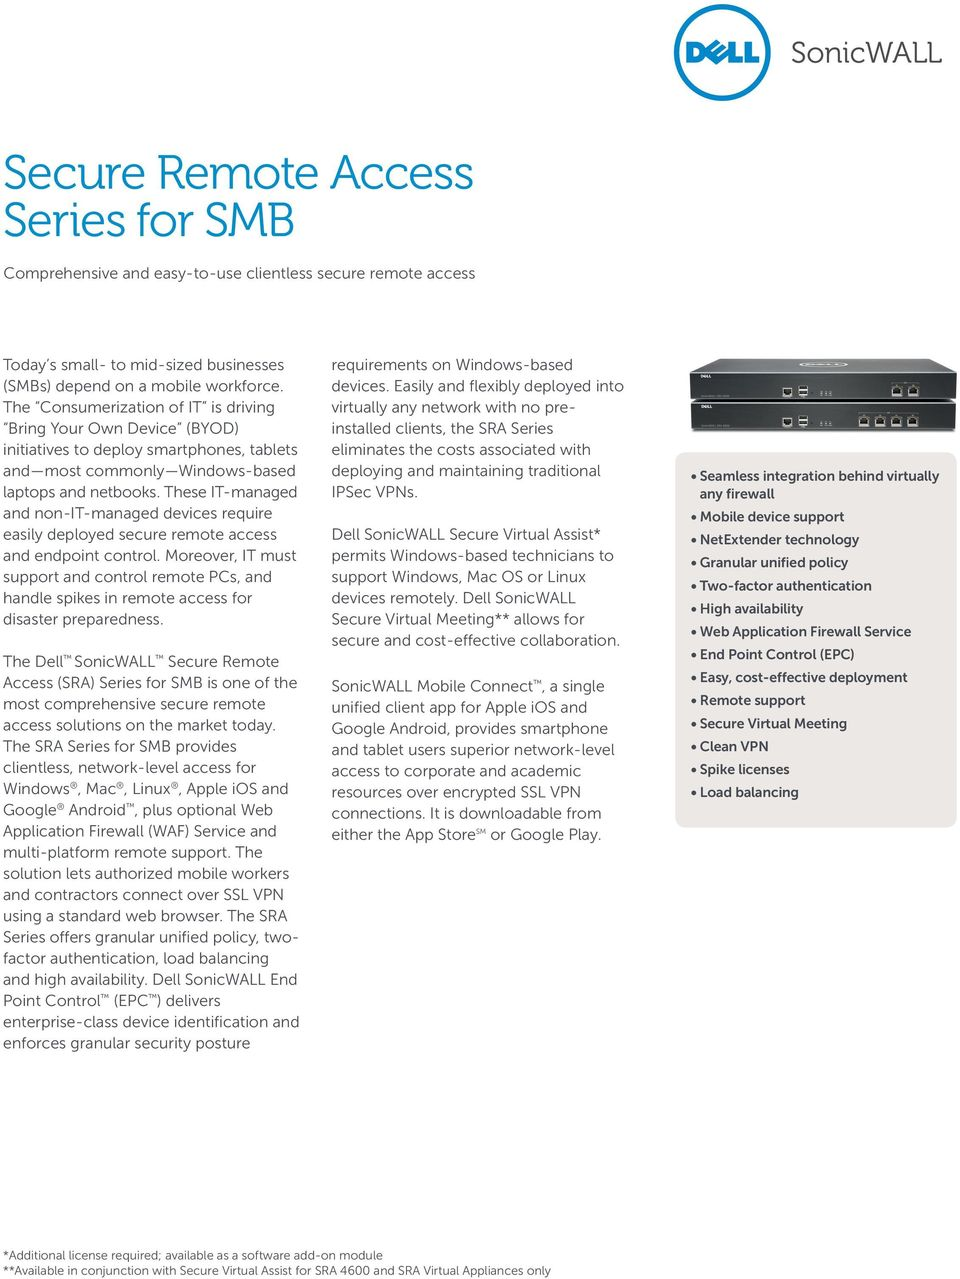 These IT-managed and non-it-managed devices require easily deployed secure remote access and endpoint control.